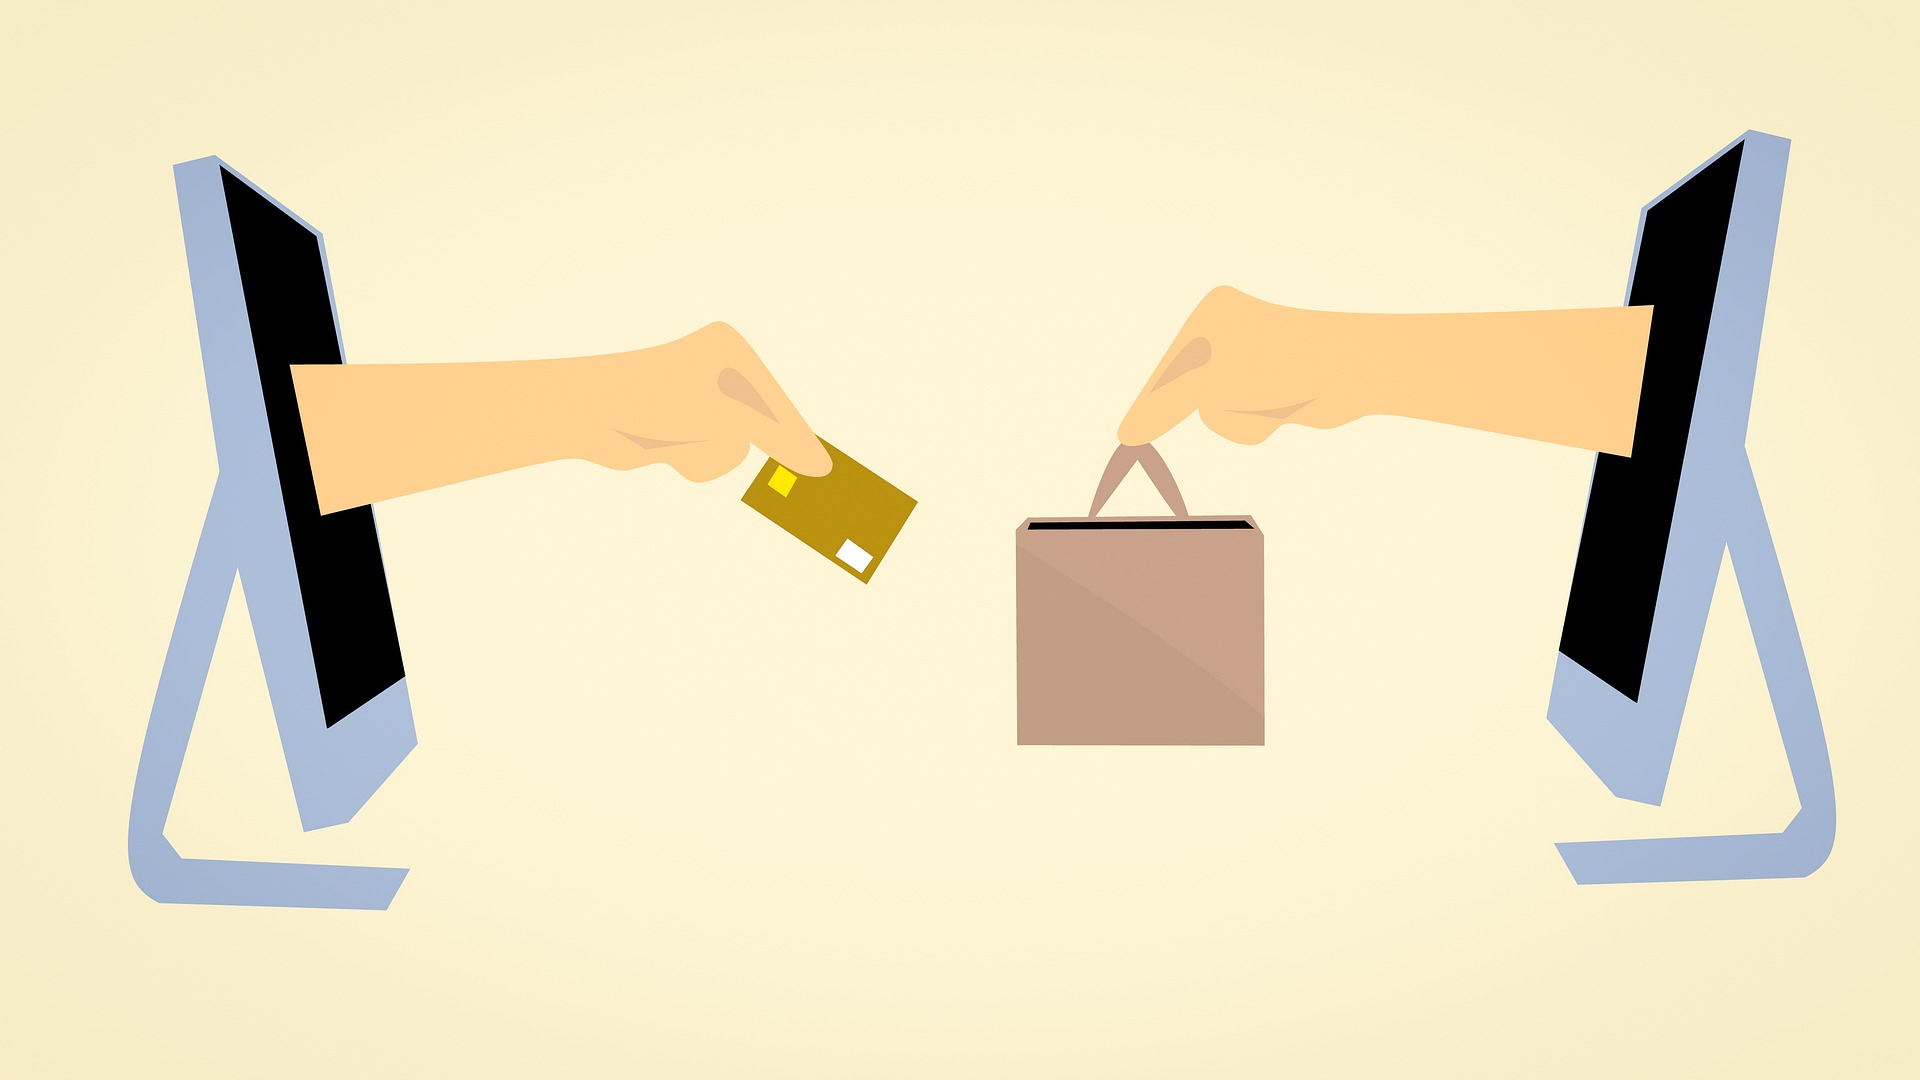 ae272cdb517f7 Brick and Mortar vs Online Shopping and its Effect on the Future of ...